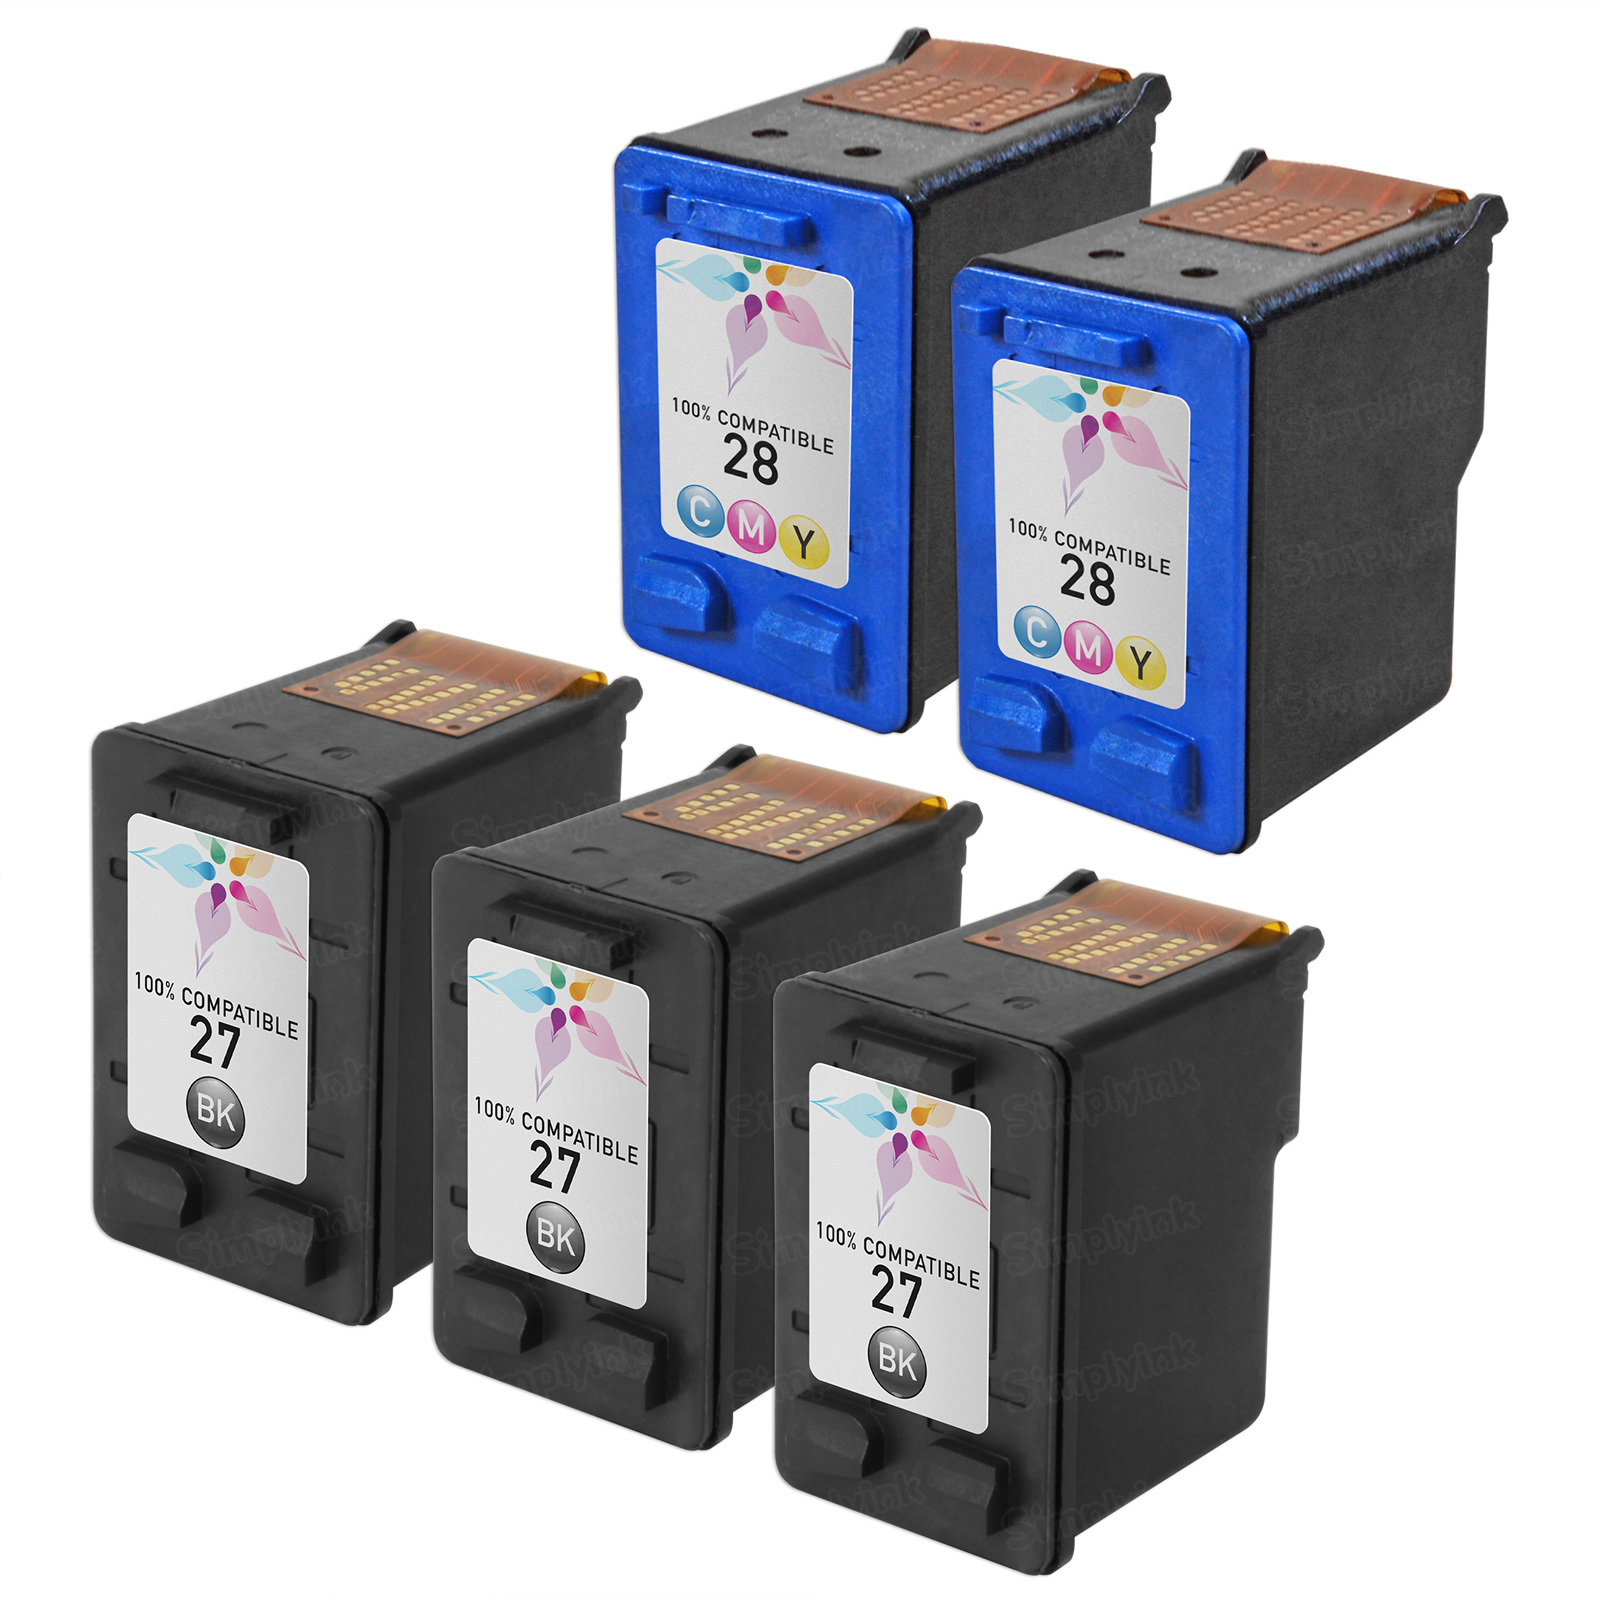 Remanufactured Bulk Set of 5 Ink Cartridges to Replace HP 27 & HP 28 (3 BK, 2 CLR)